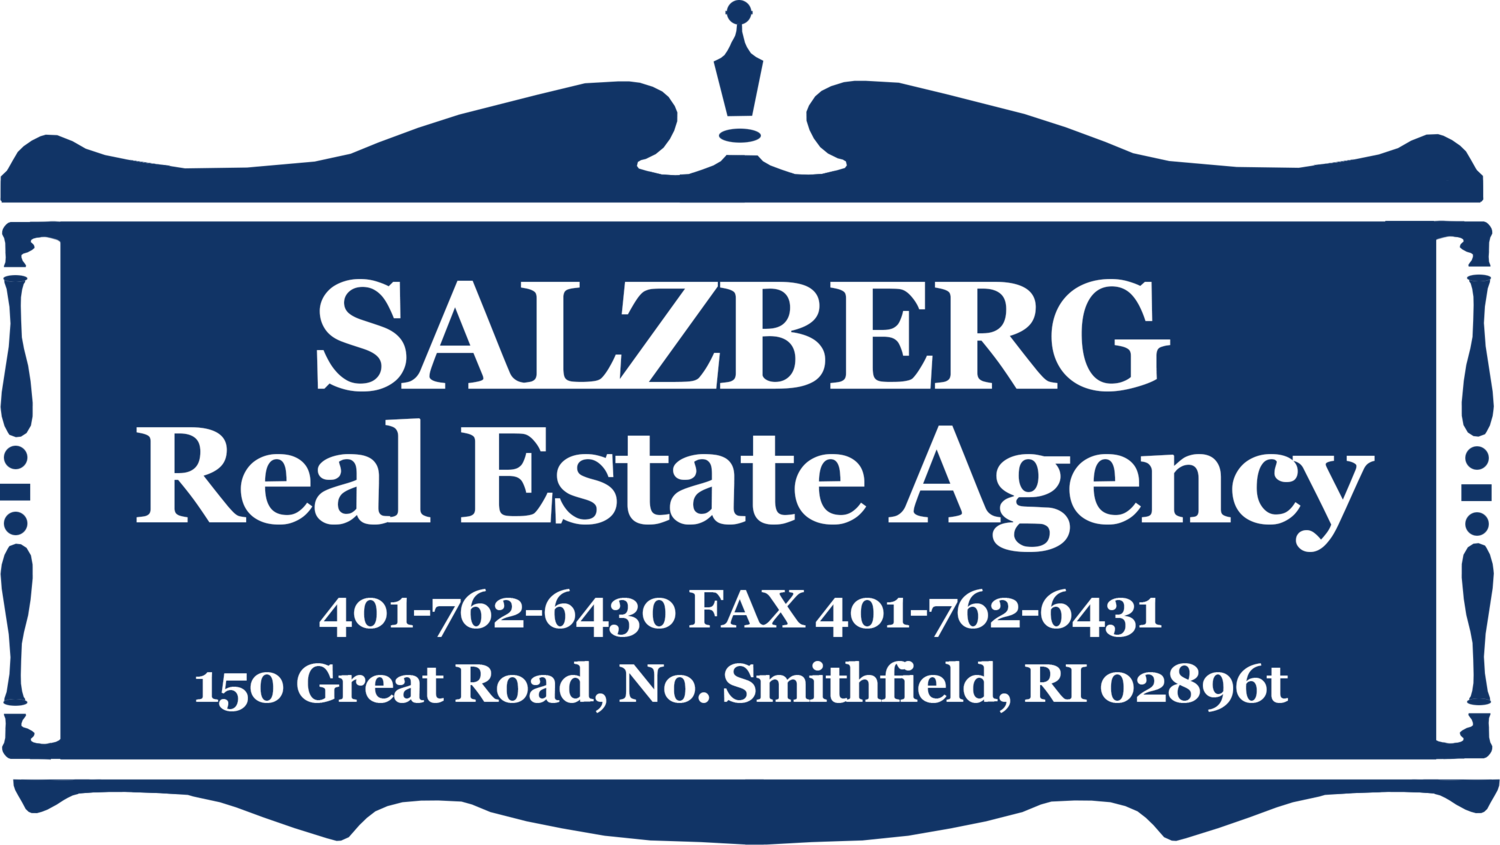 Salzberg Real Estate